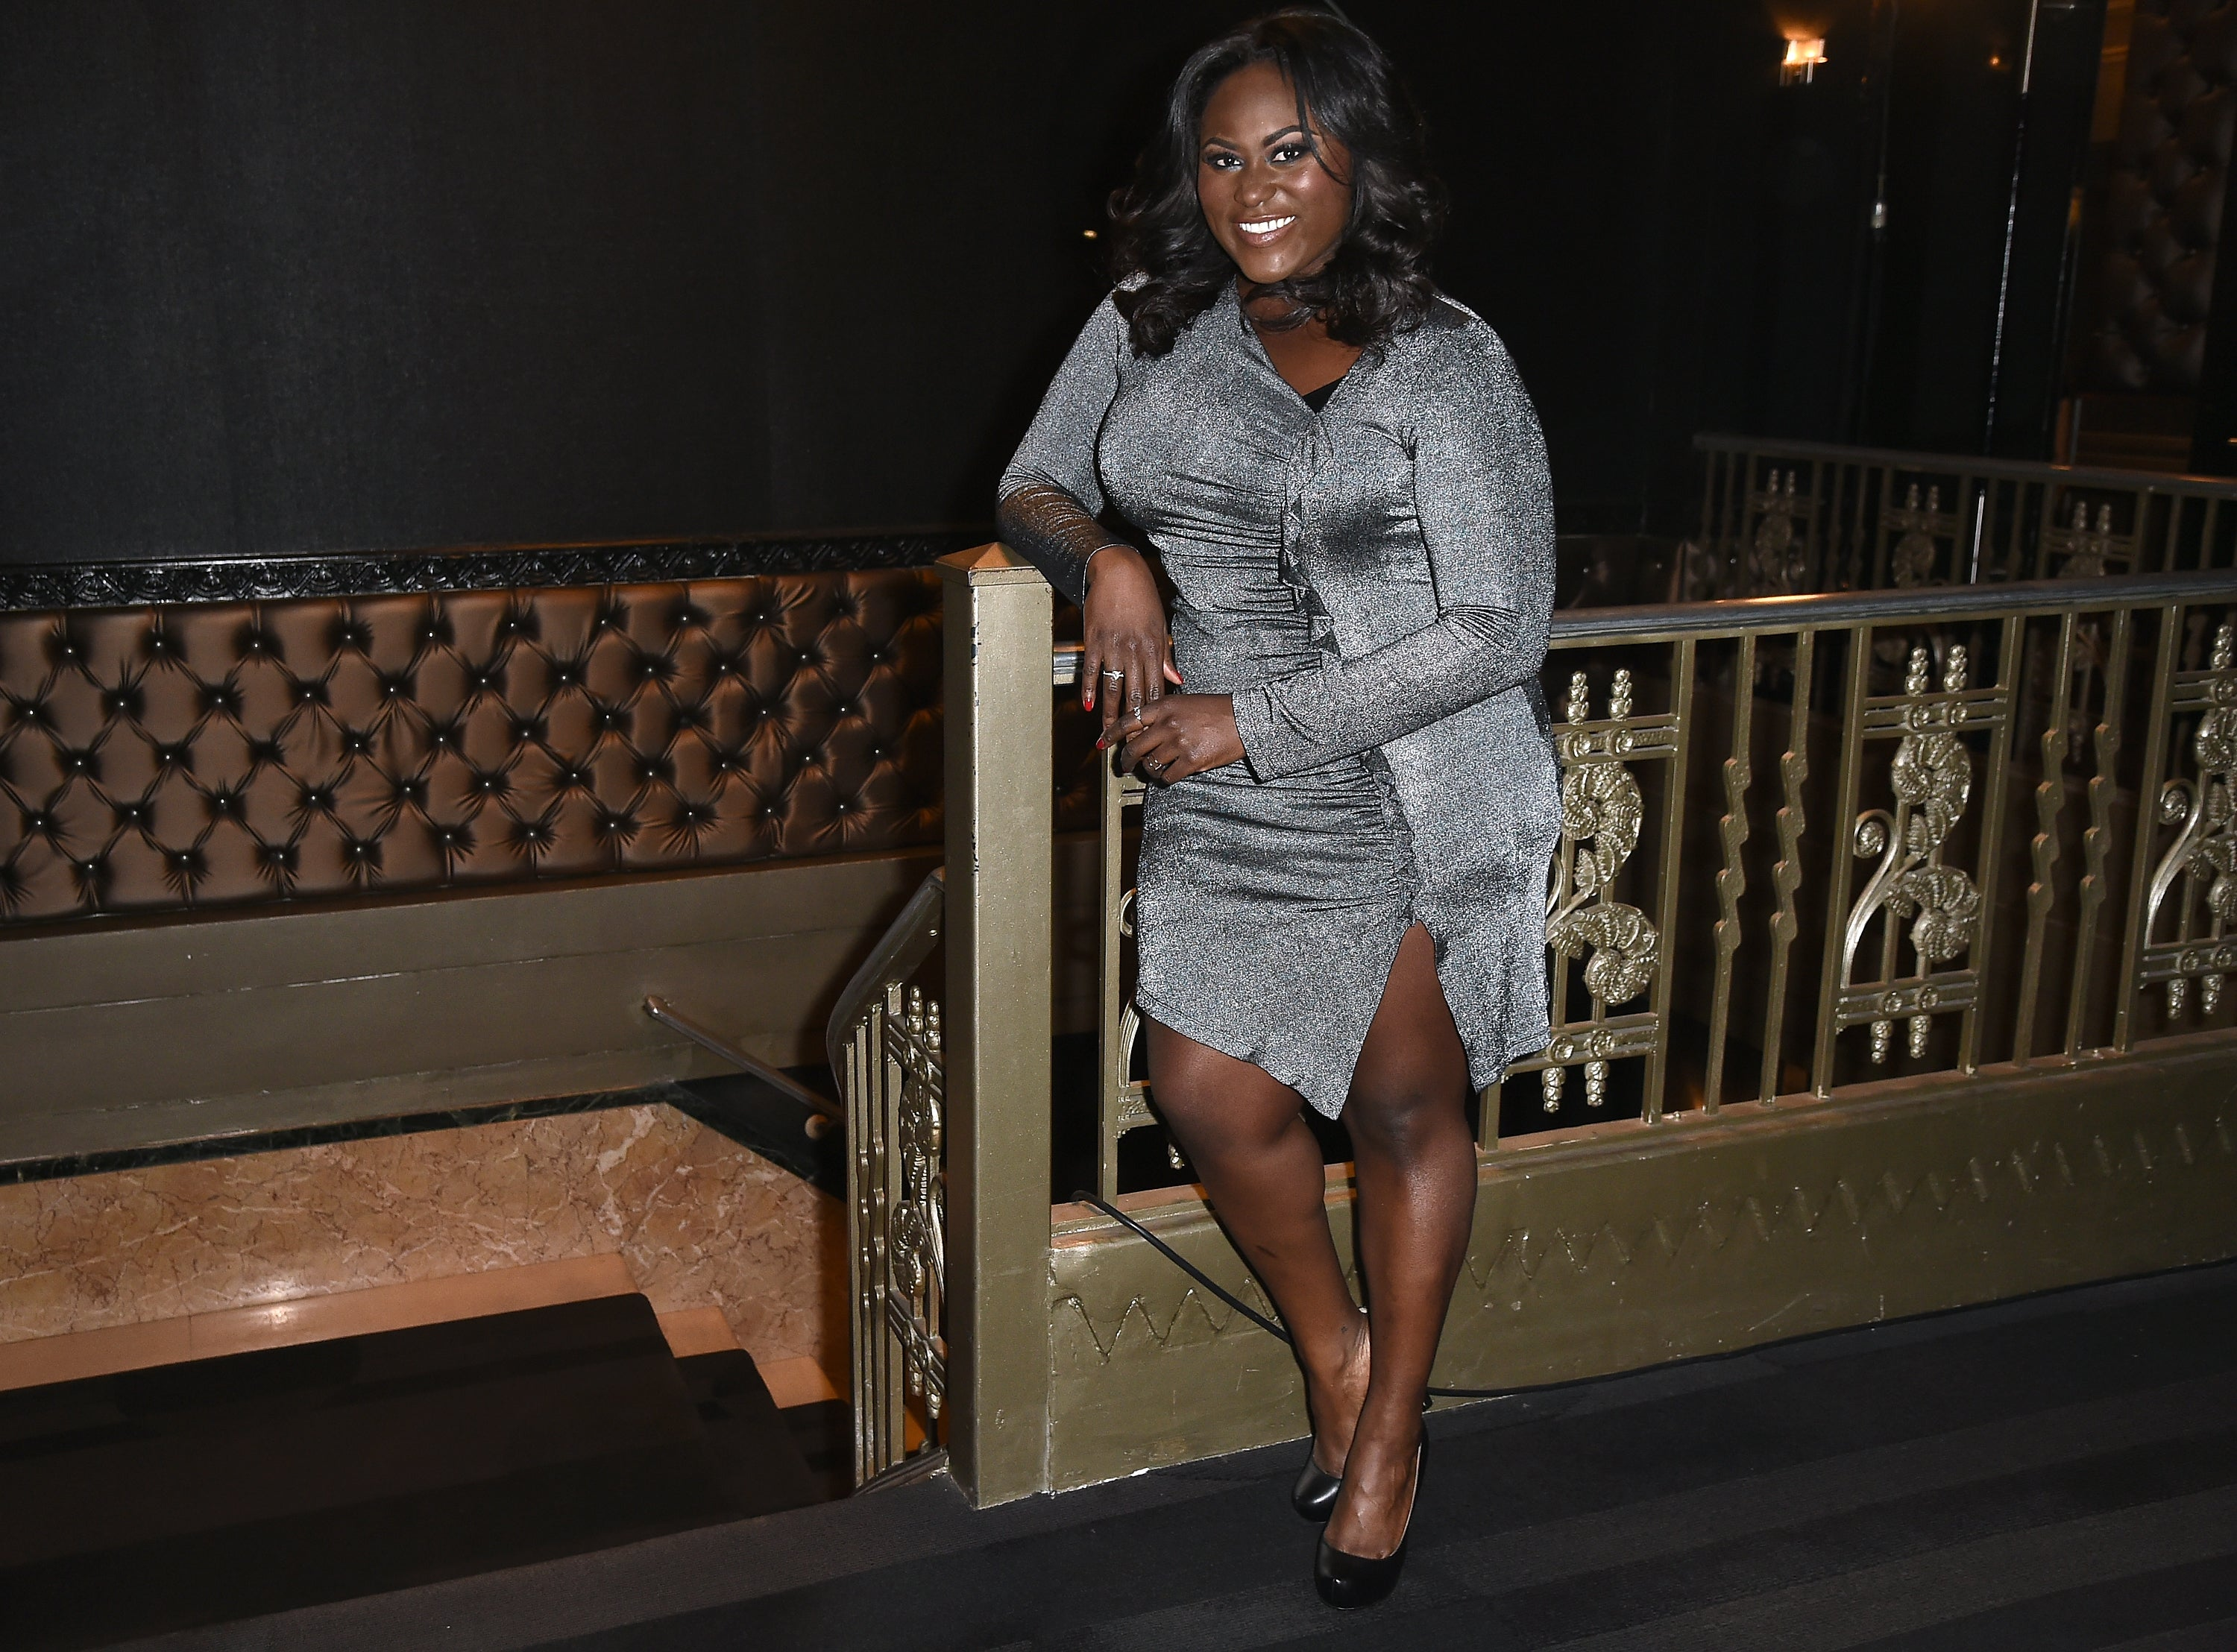 Danielle Brooks Is Proud Of Her Stretch Marks: 'That's Just The Road Map Of My Strength'